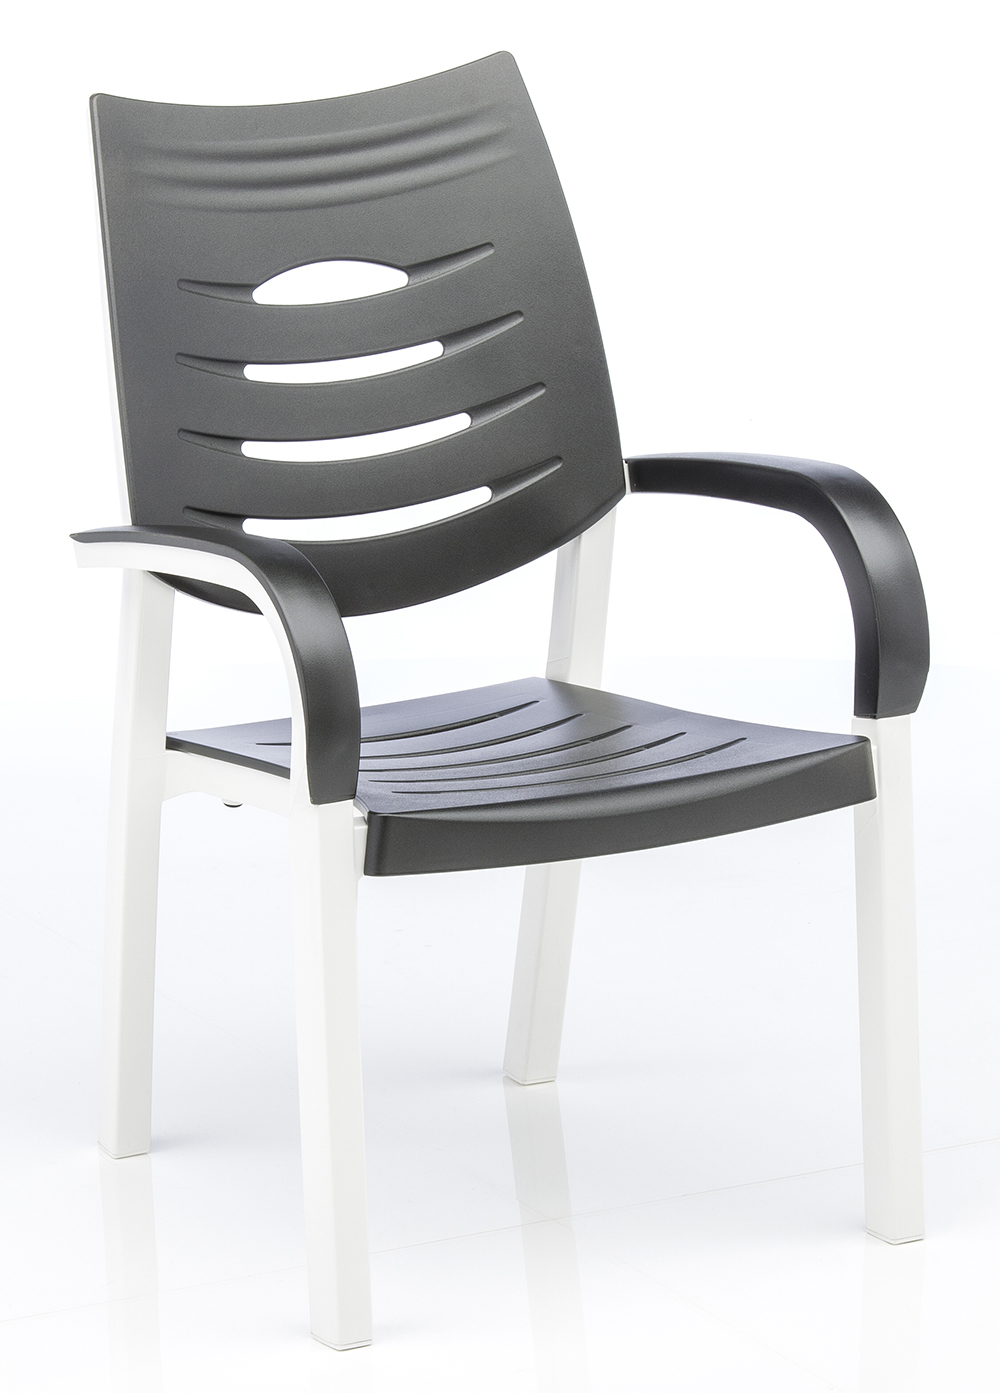 HAPPY CHAIR-ANTHRACITE 310202-0000